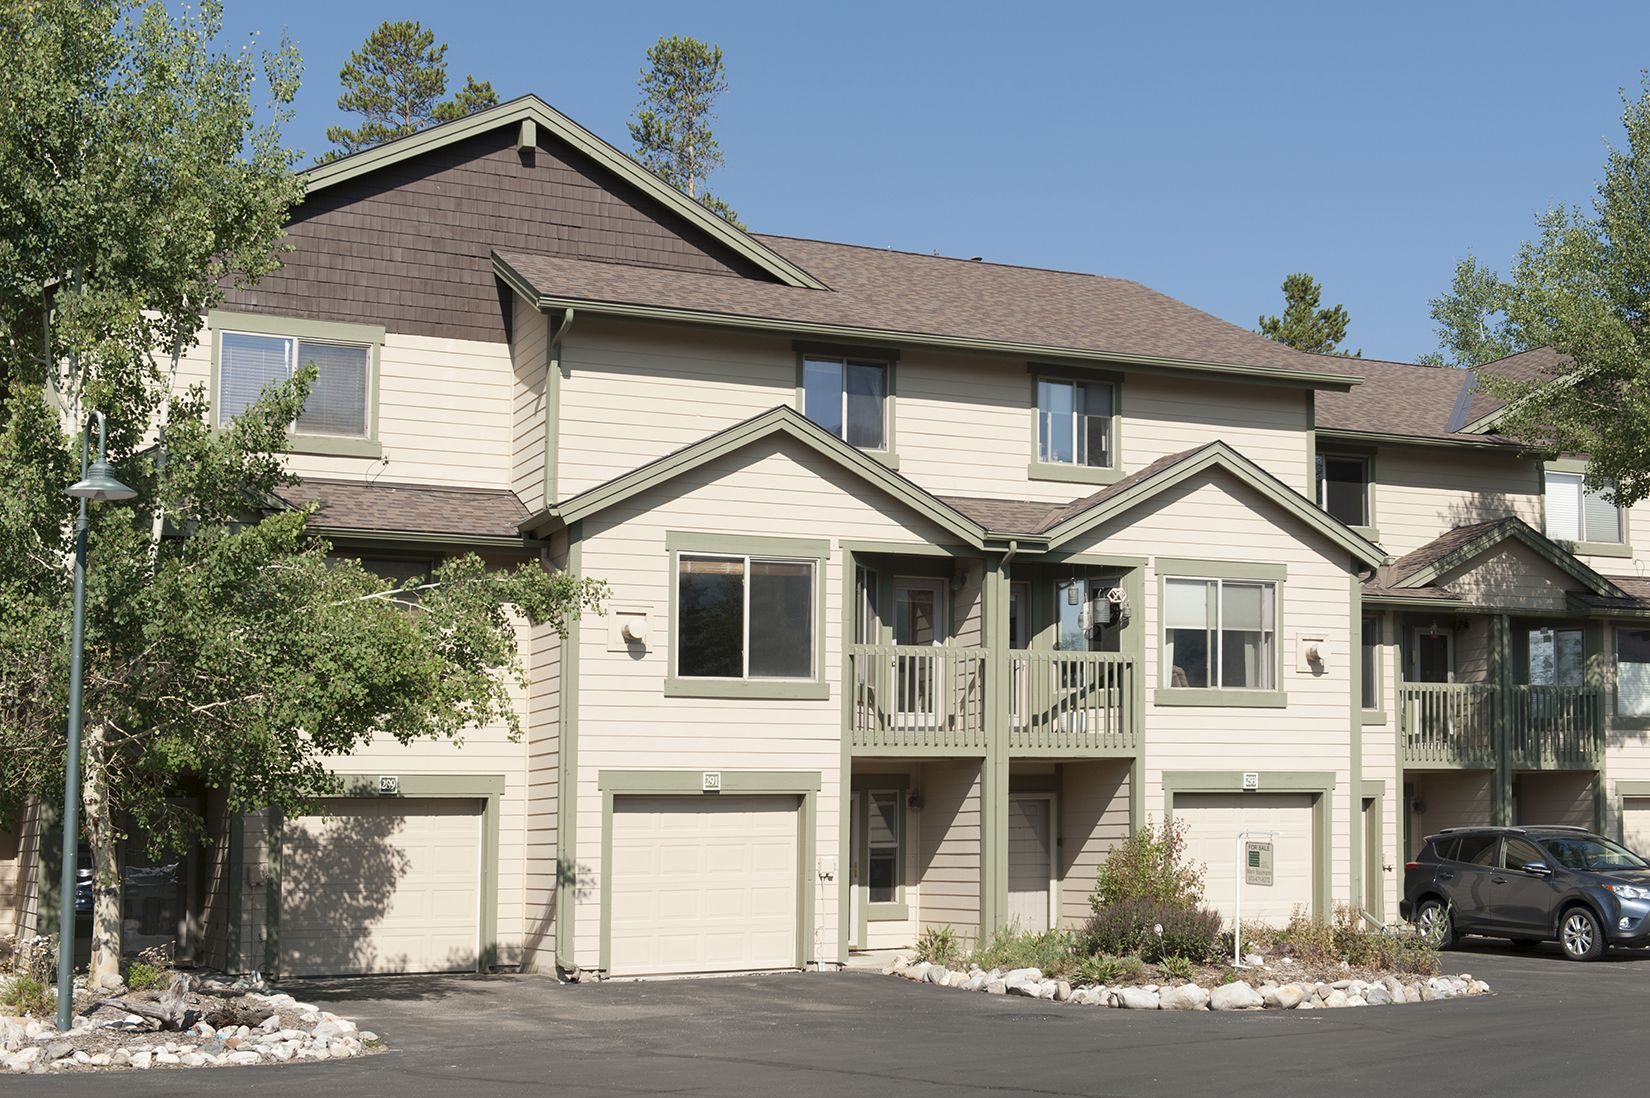 291 Kestrel LANE # 291 SILVERTHORNE, Colorado 80498